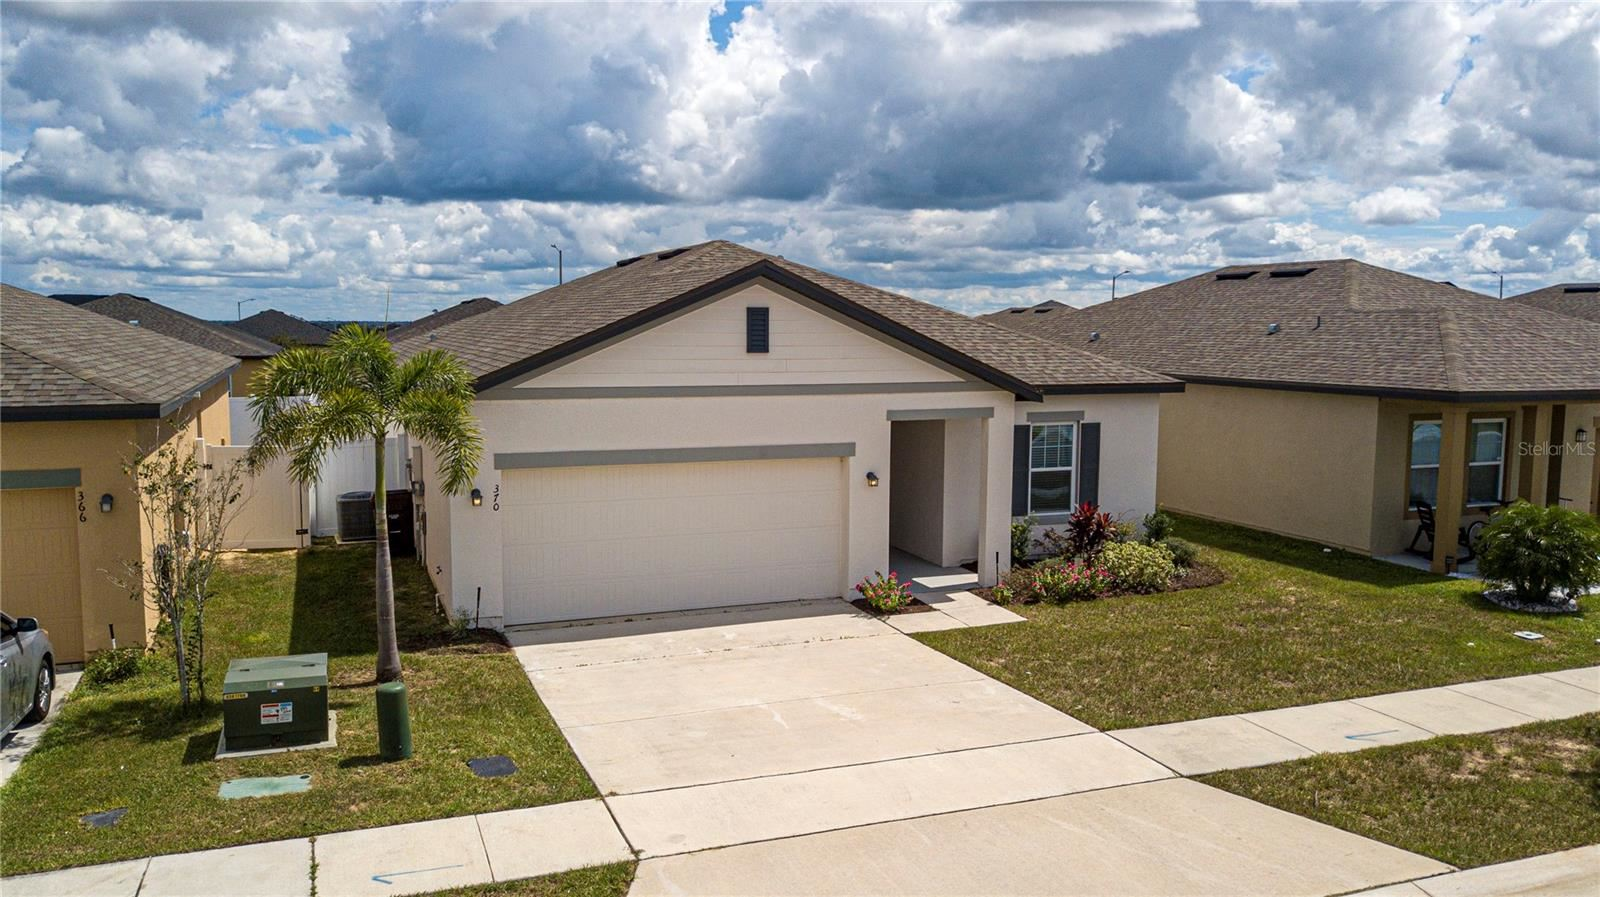 Photo of 370 EAGLECREST DRIVE, HAINES CITY, FL 33844 (MLS # S5056110)